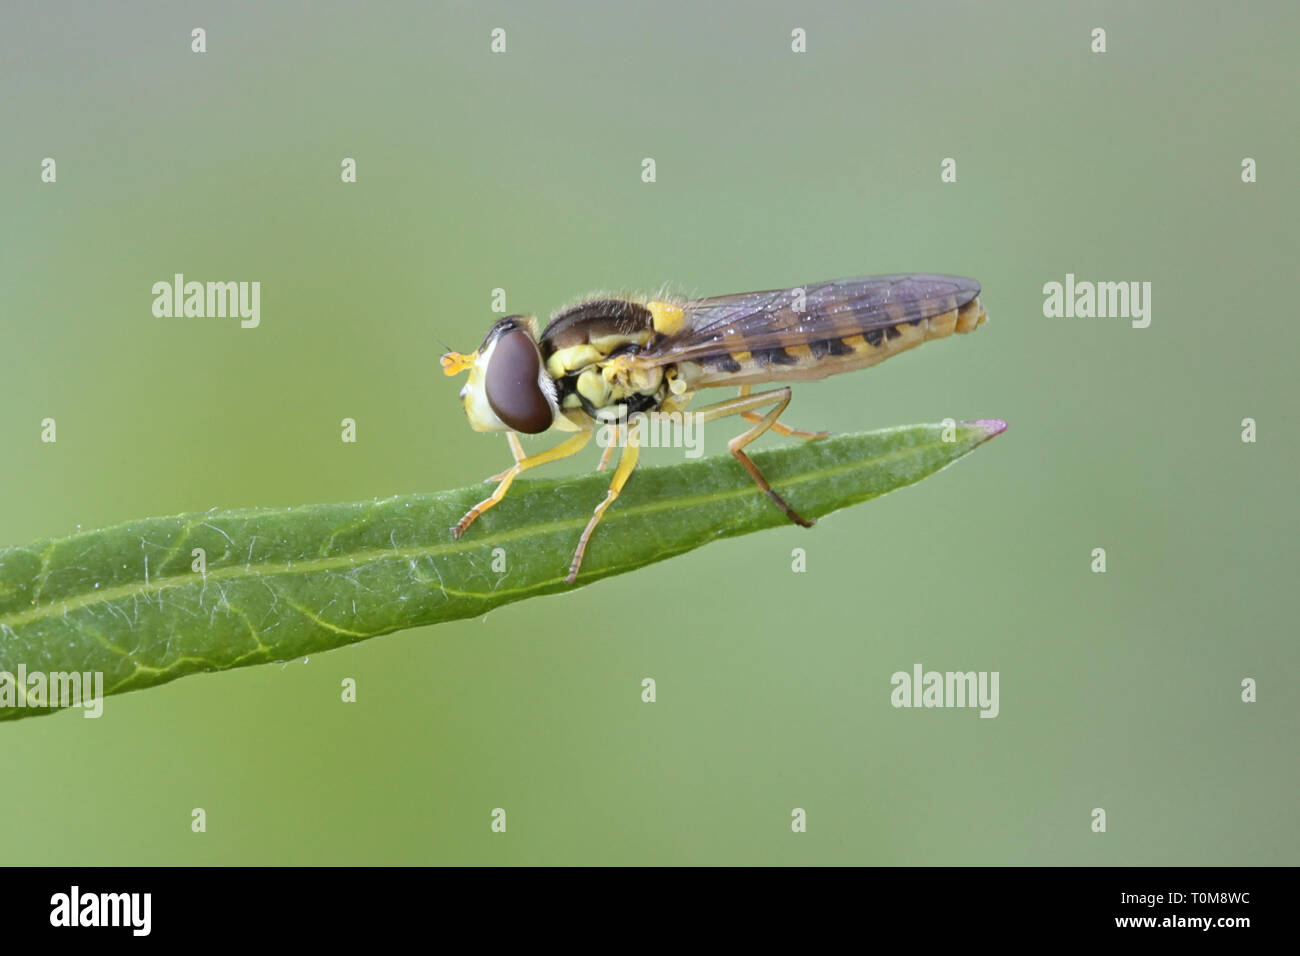 Hoverfly, sometimes called flower fly or syrphid fly, a very beneficilai insect as a pollinator and predator of aphids. - Stock Image